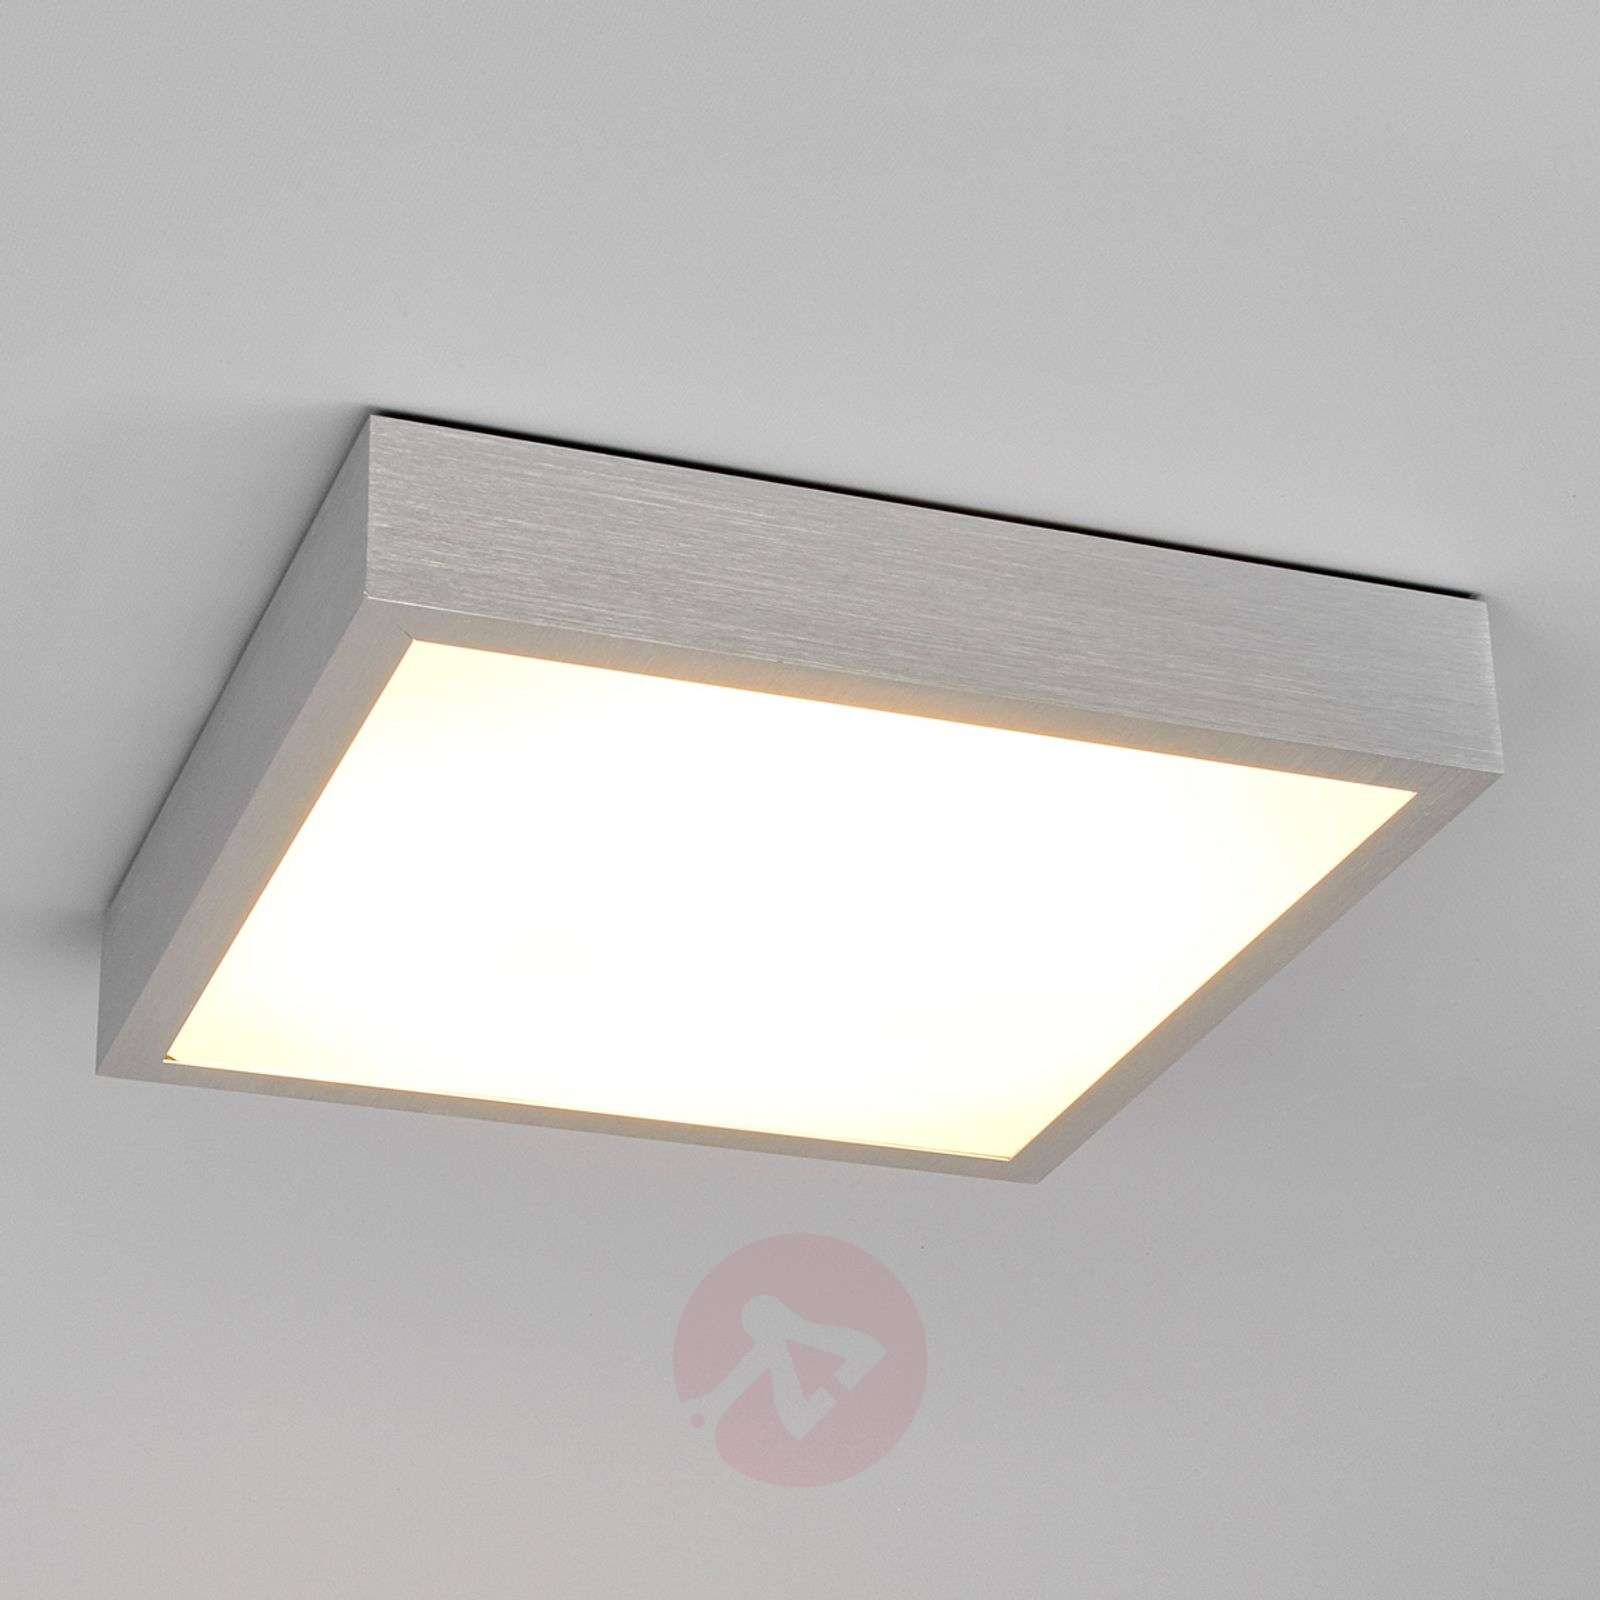 Led Ceiling Lights Company : Square led ceiling lights images w surface